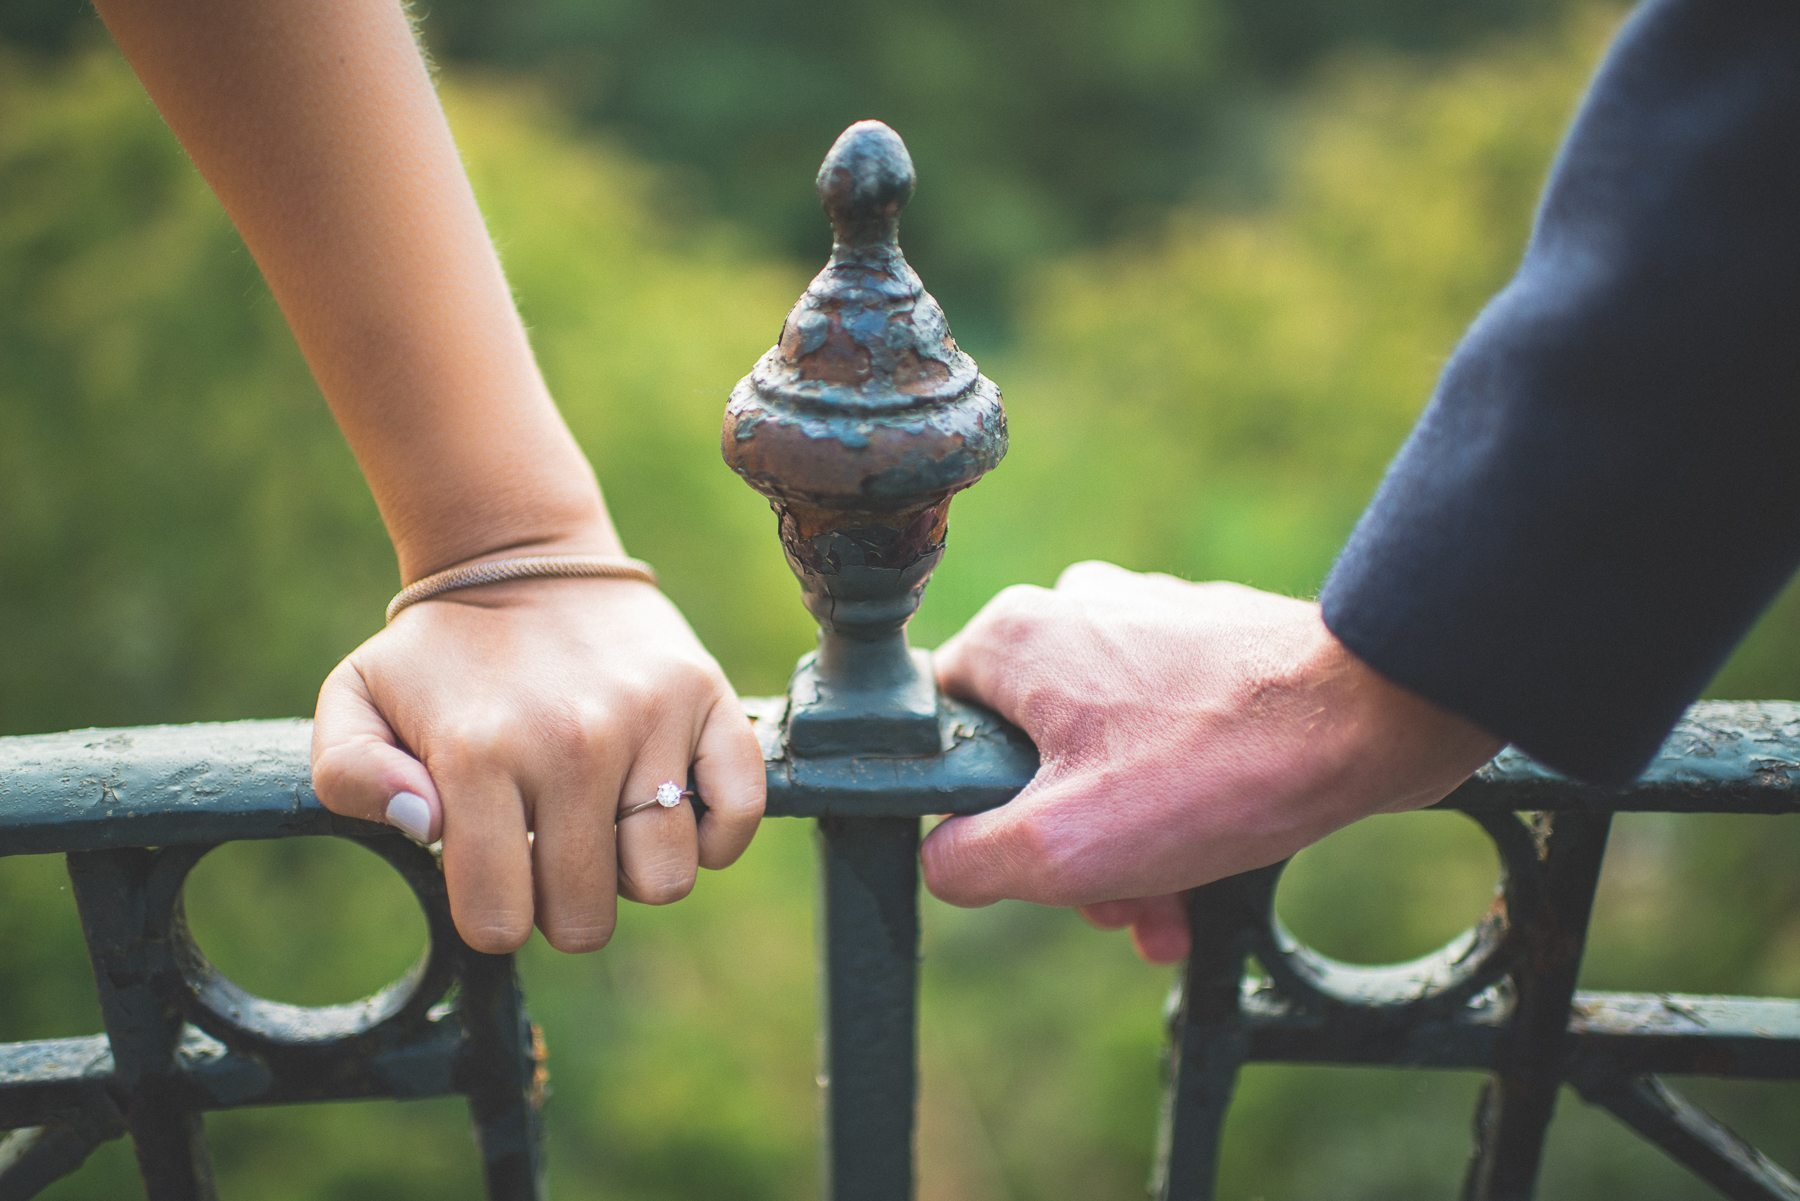 Engaged couple's hands holding on closely to a railing